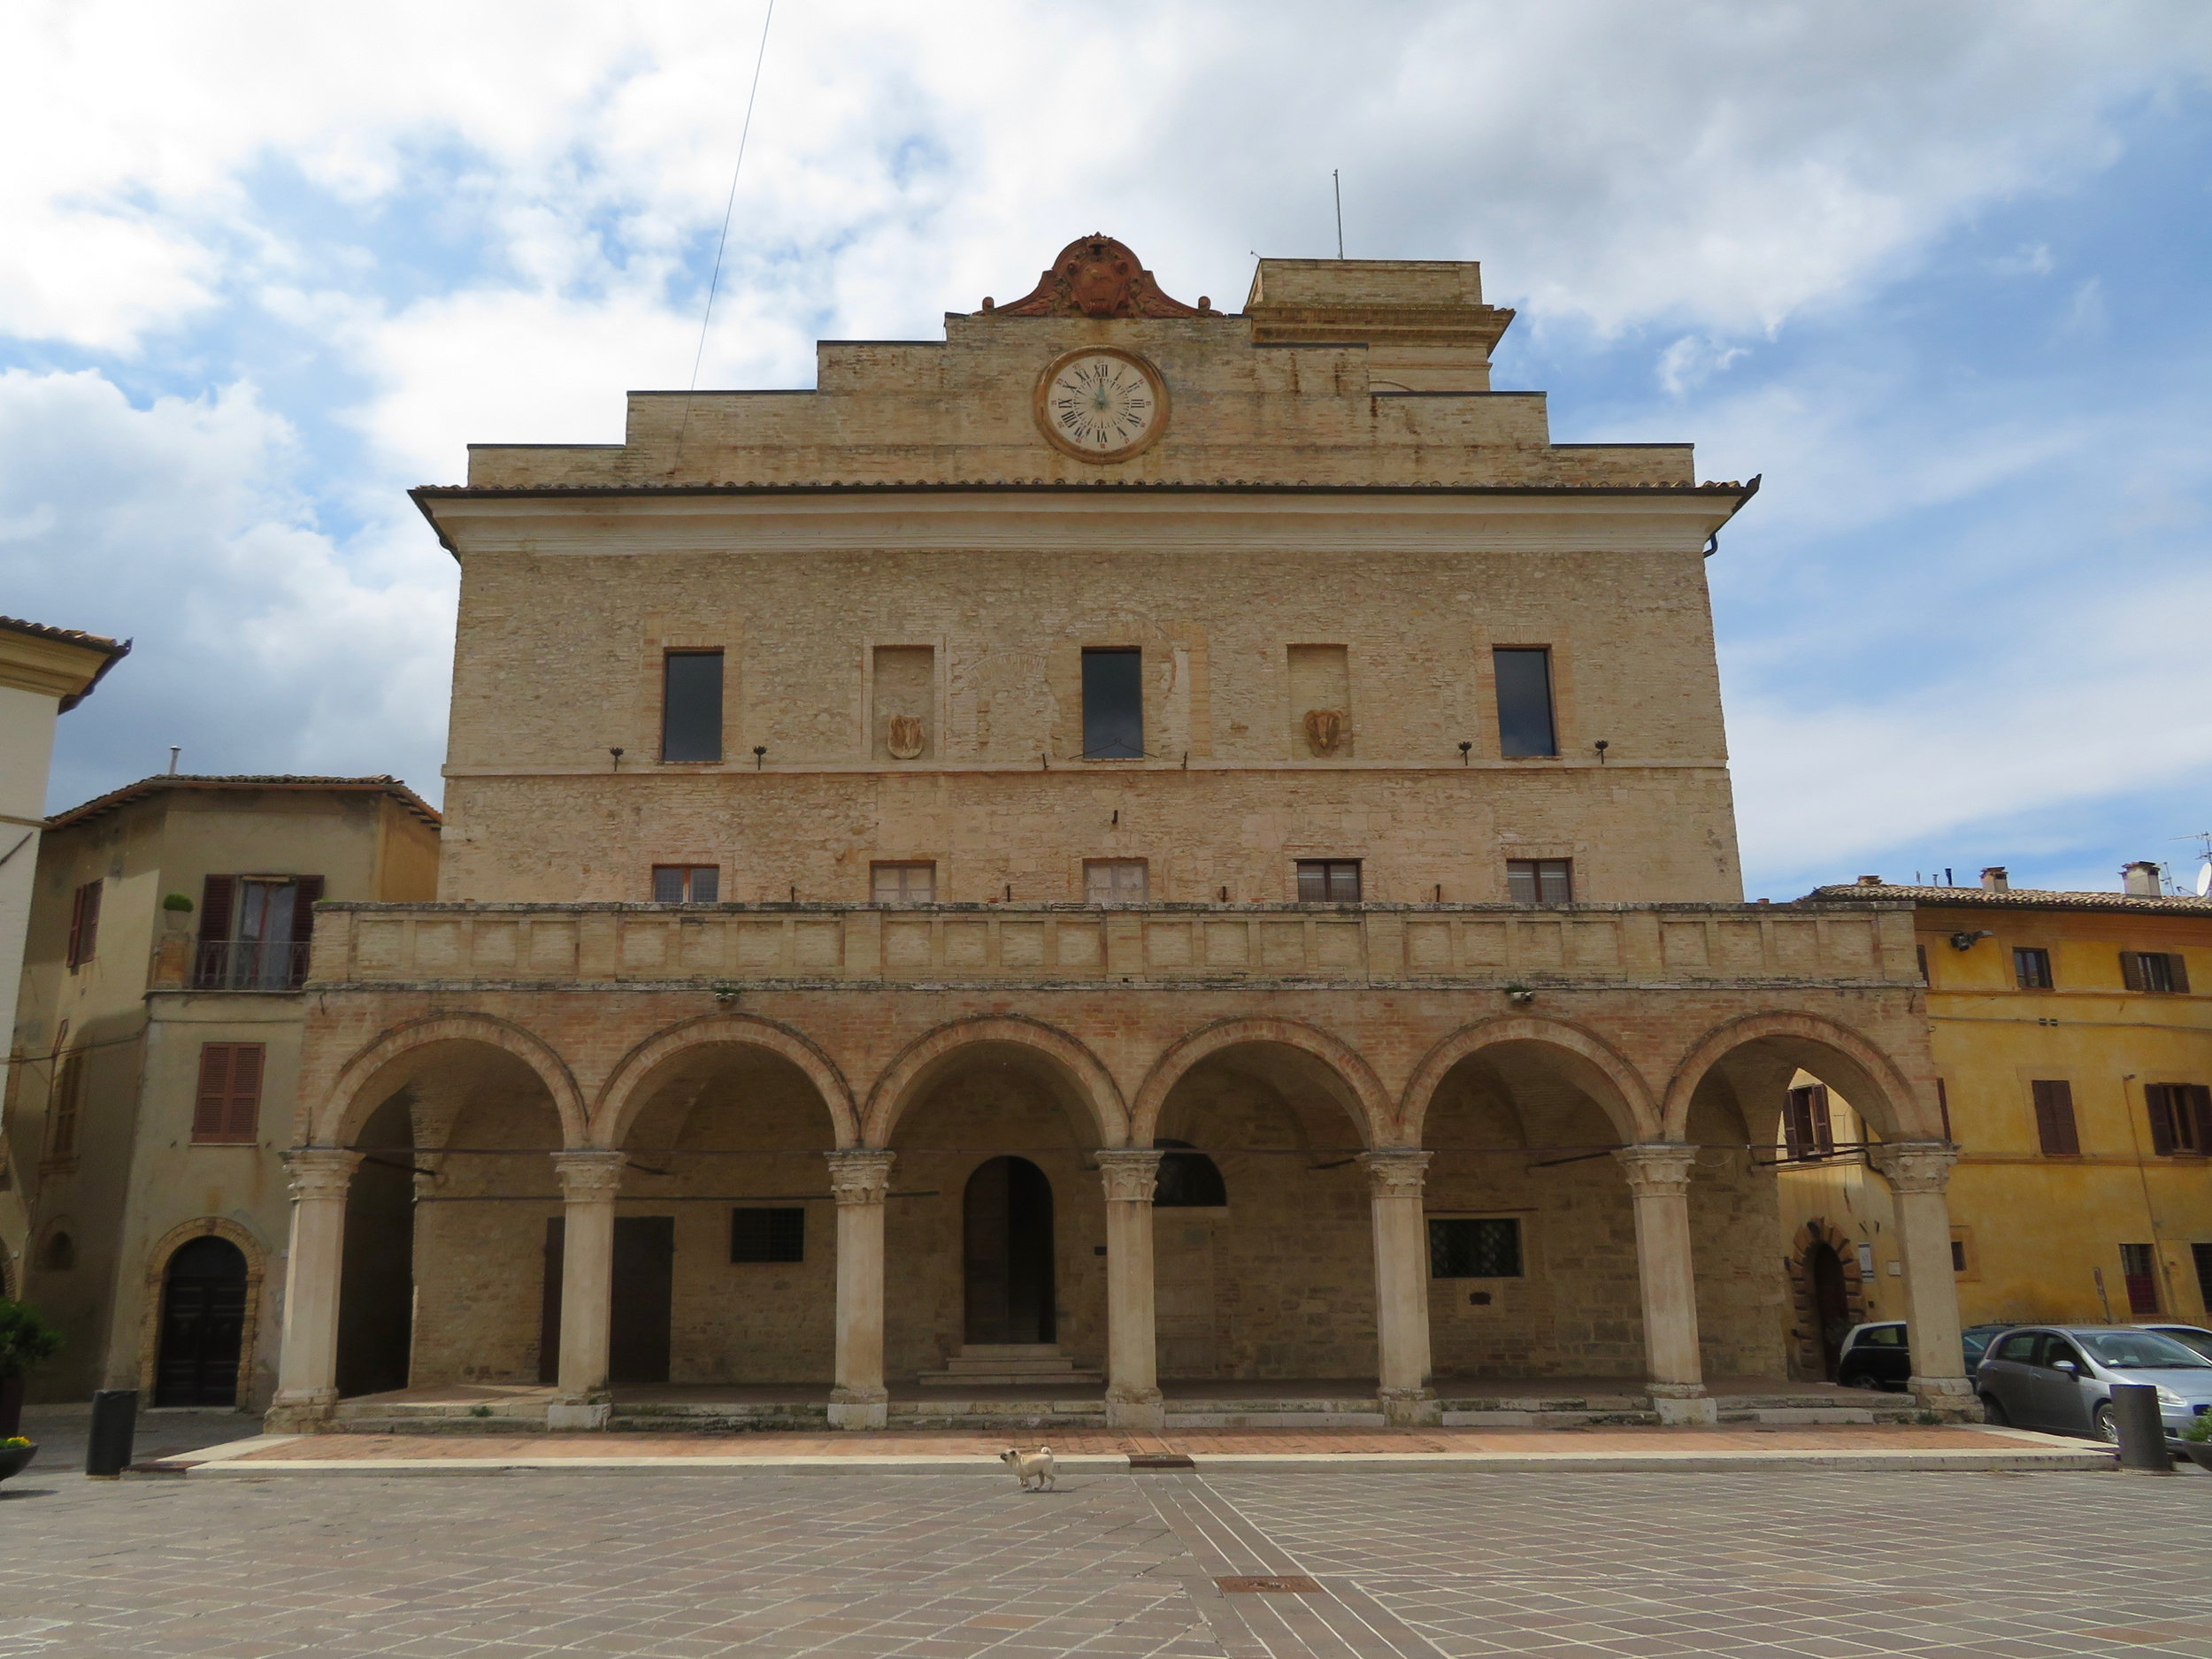 The piazza in Montefalco. Big building, tiny dog.